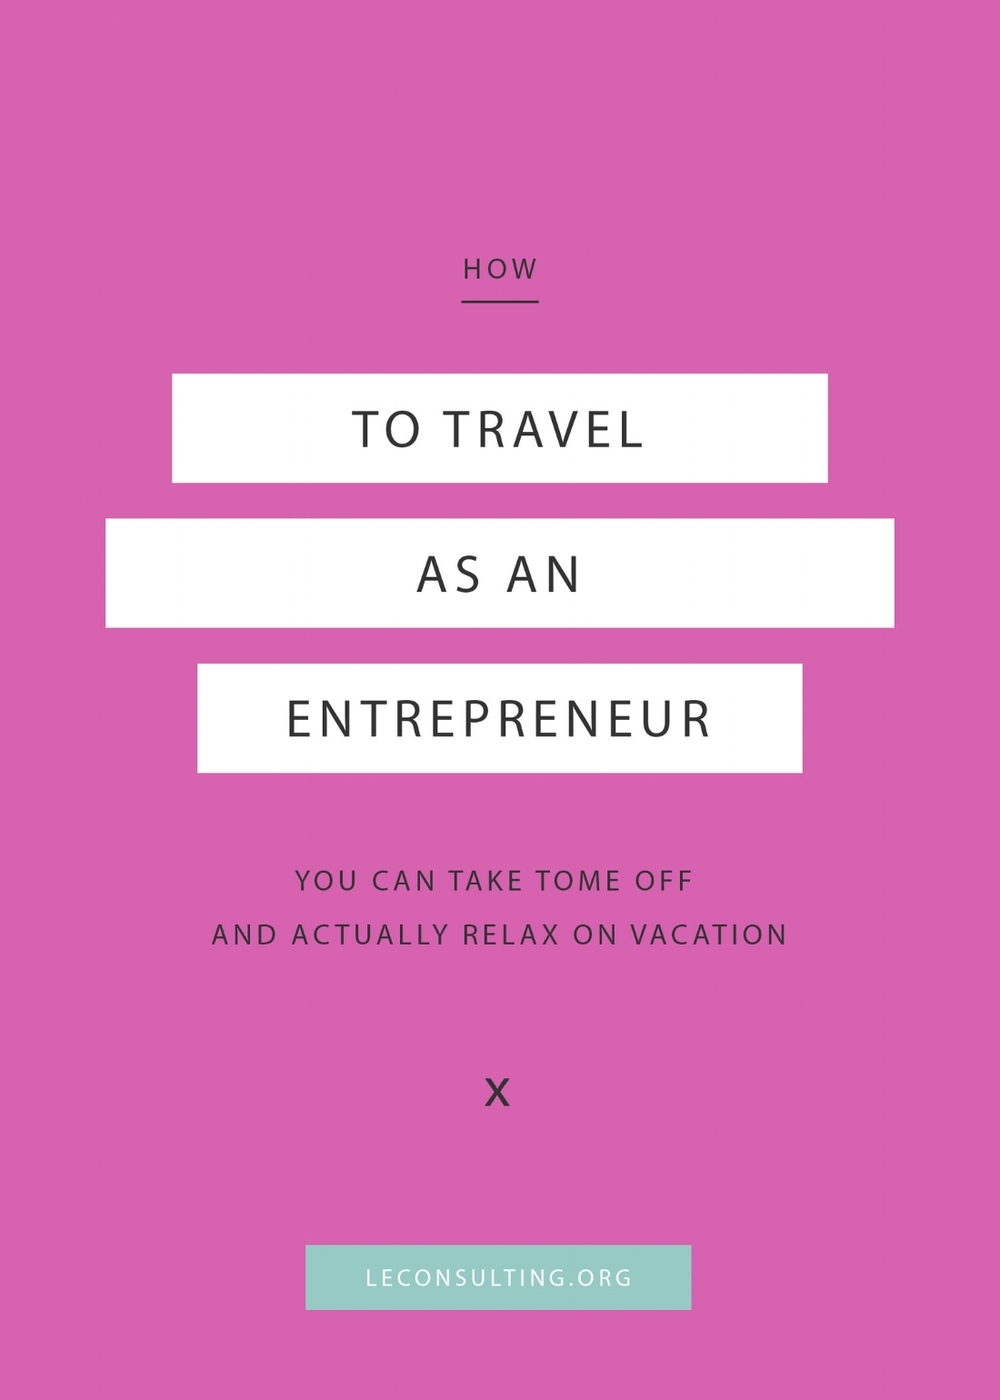 When we're our own boss, traveling for vacation can be a little complicated if you're not prepared. Click through to read how you can continue being the ultimate creative entrepreneur while decompressing on vacation. | LE Consulting